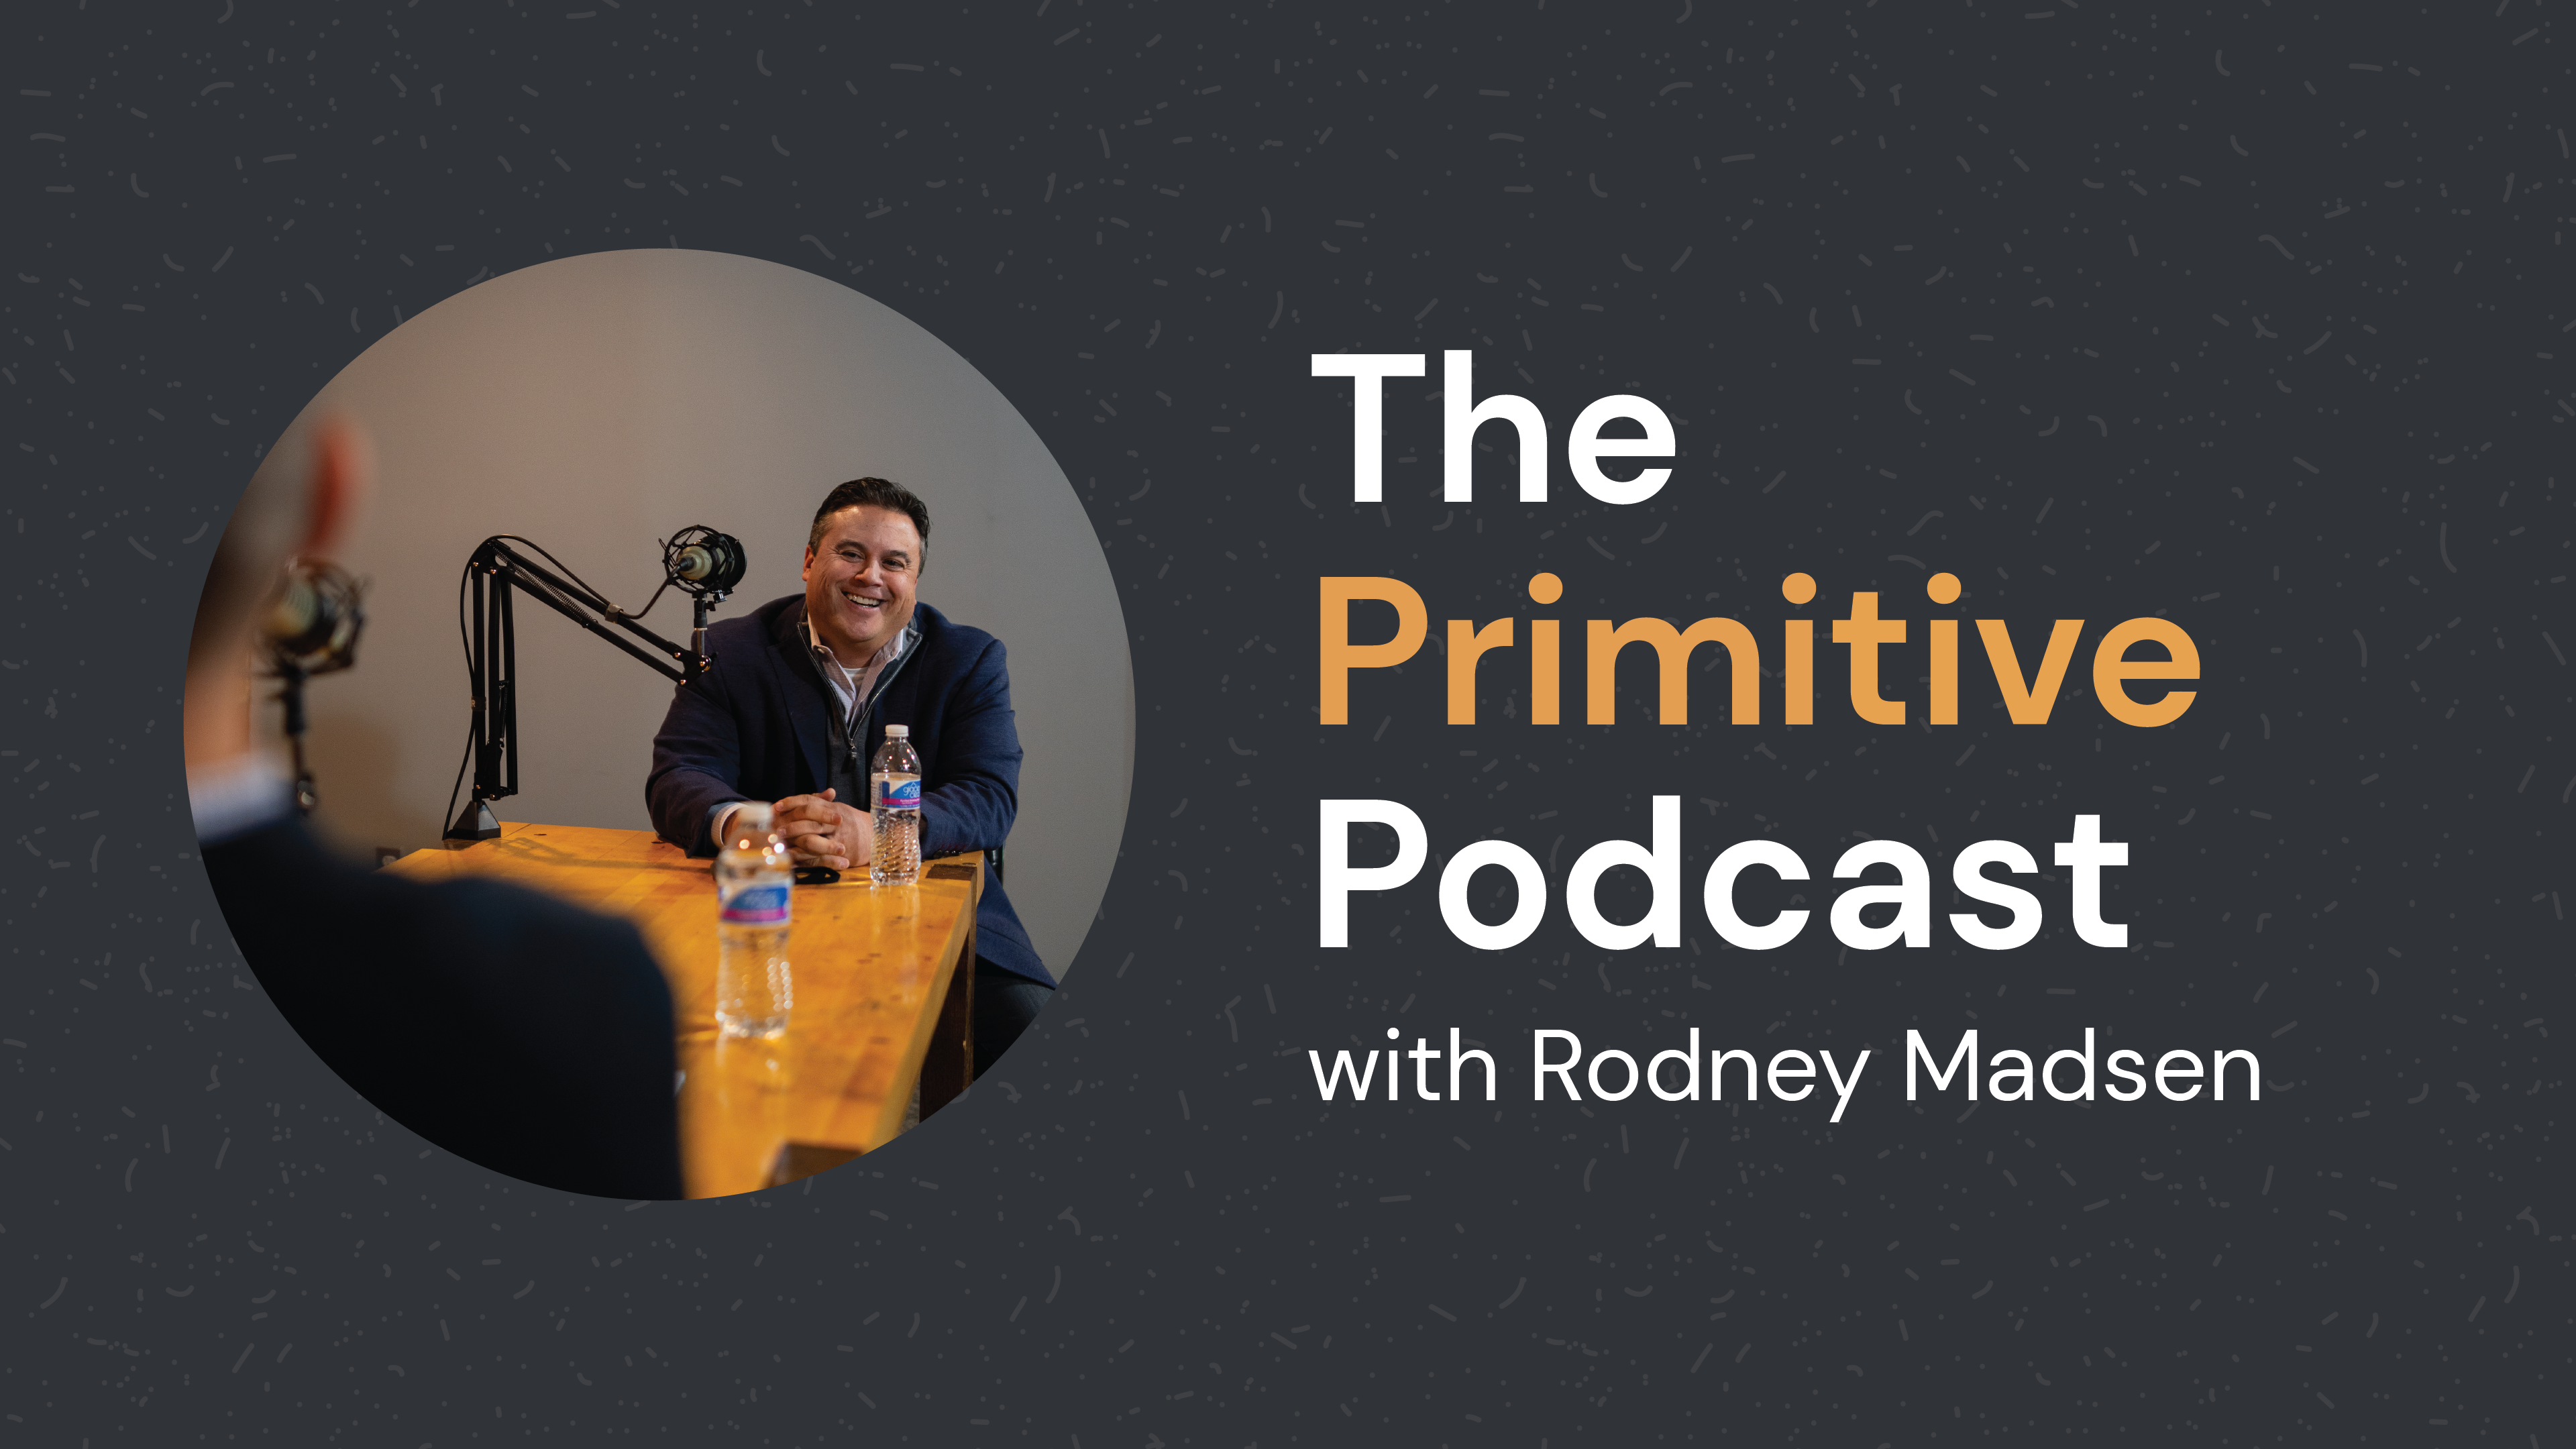 The Primitive Podcast with Rodney Madsen